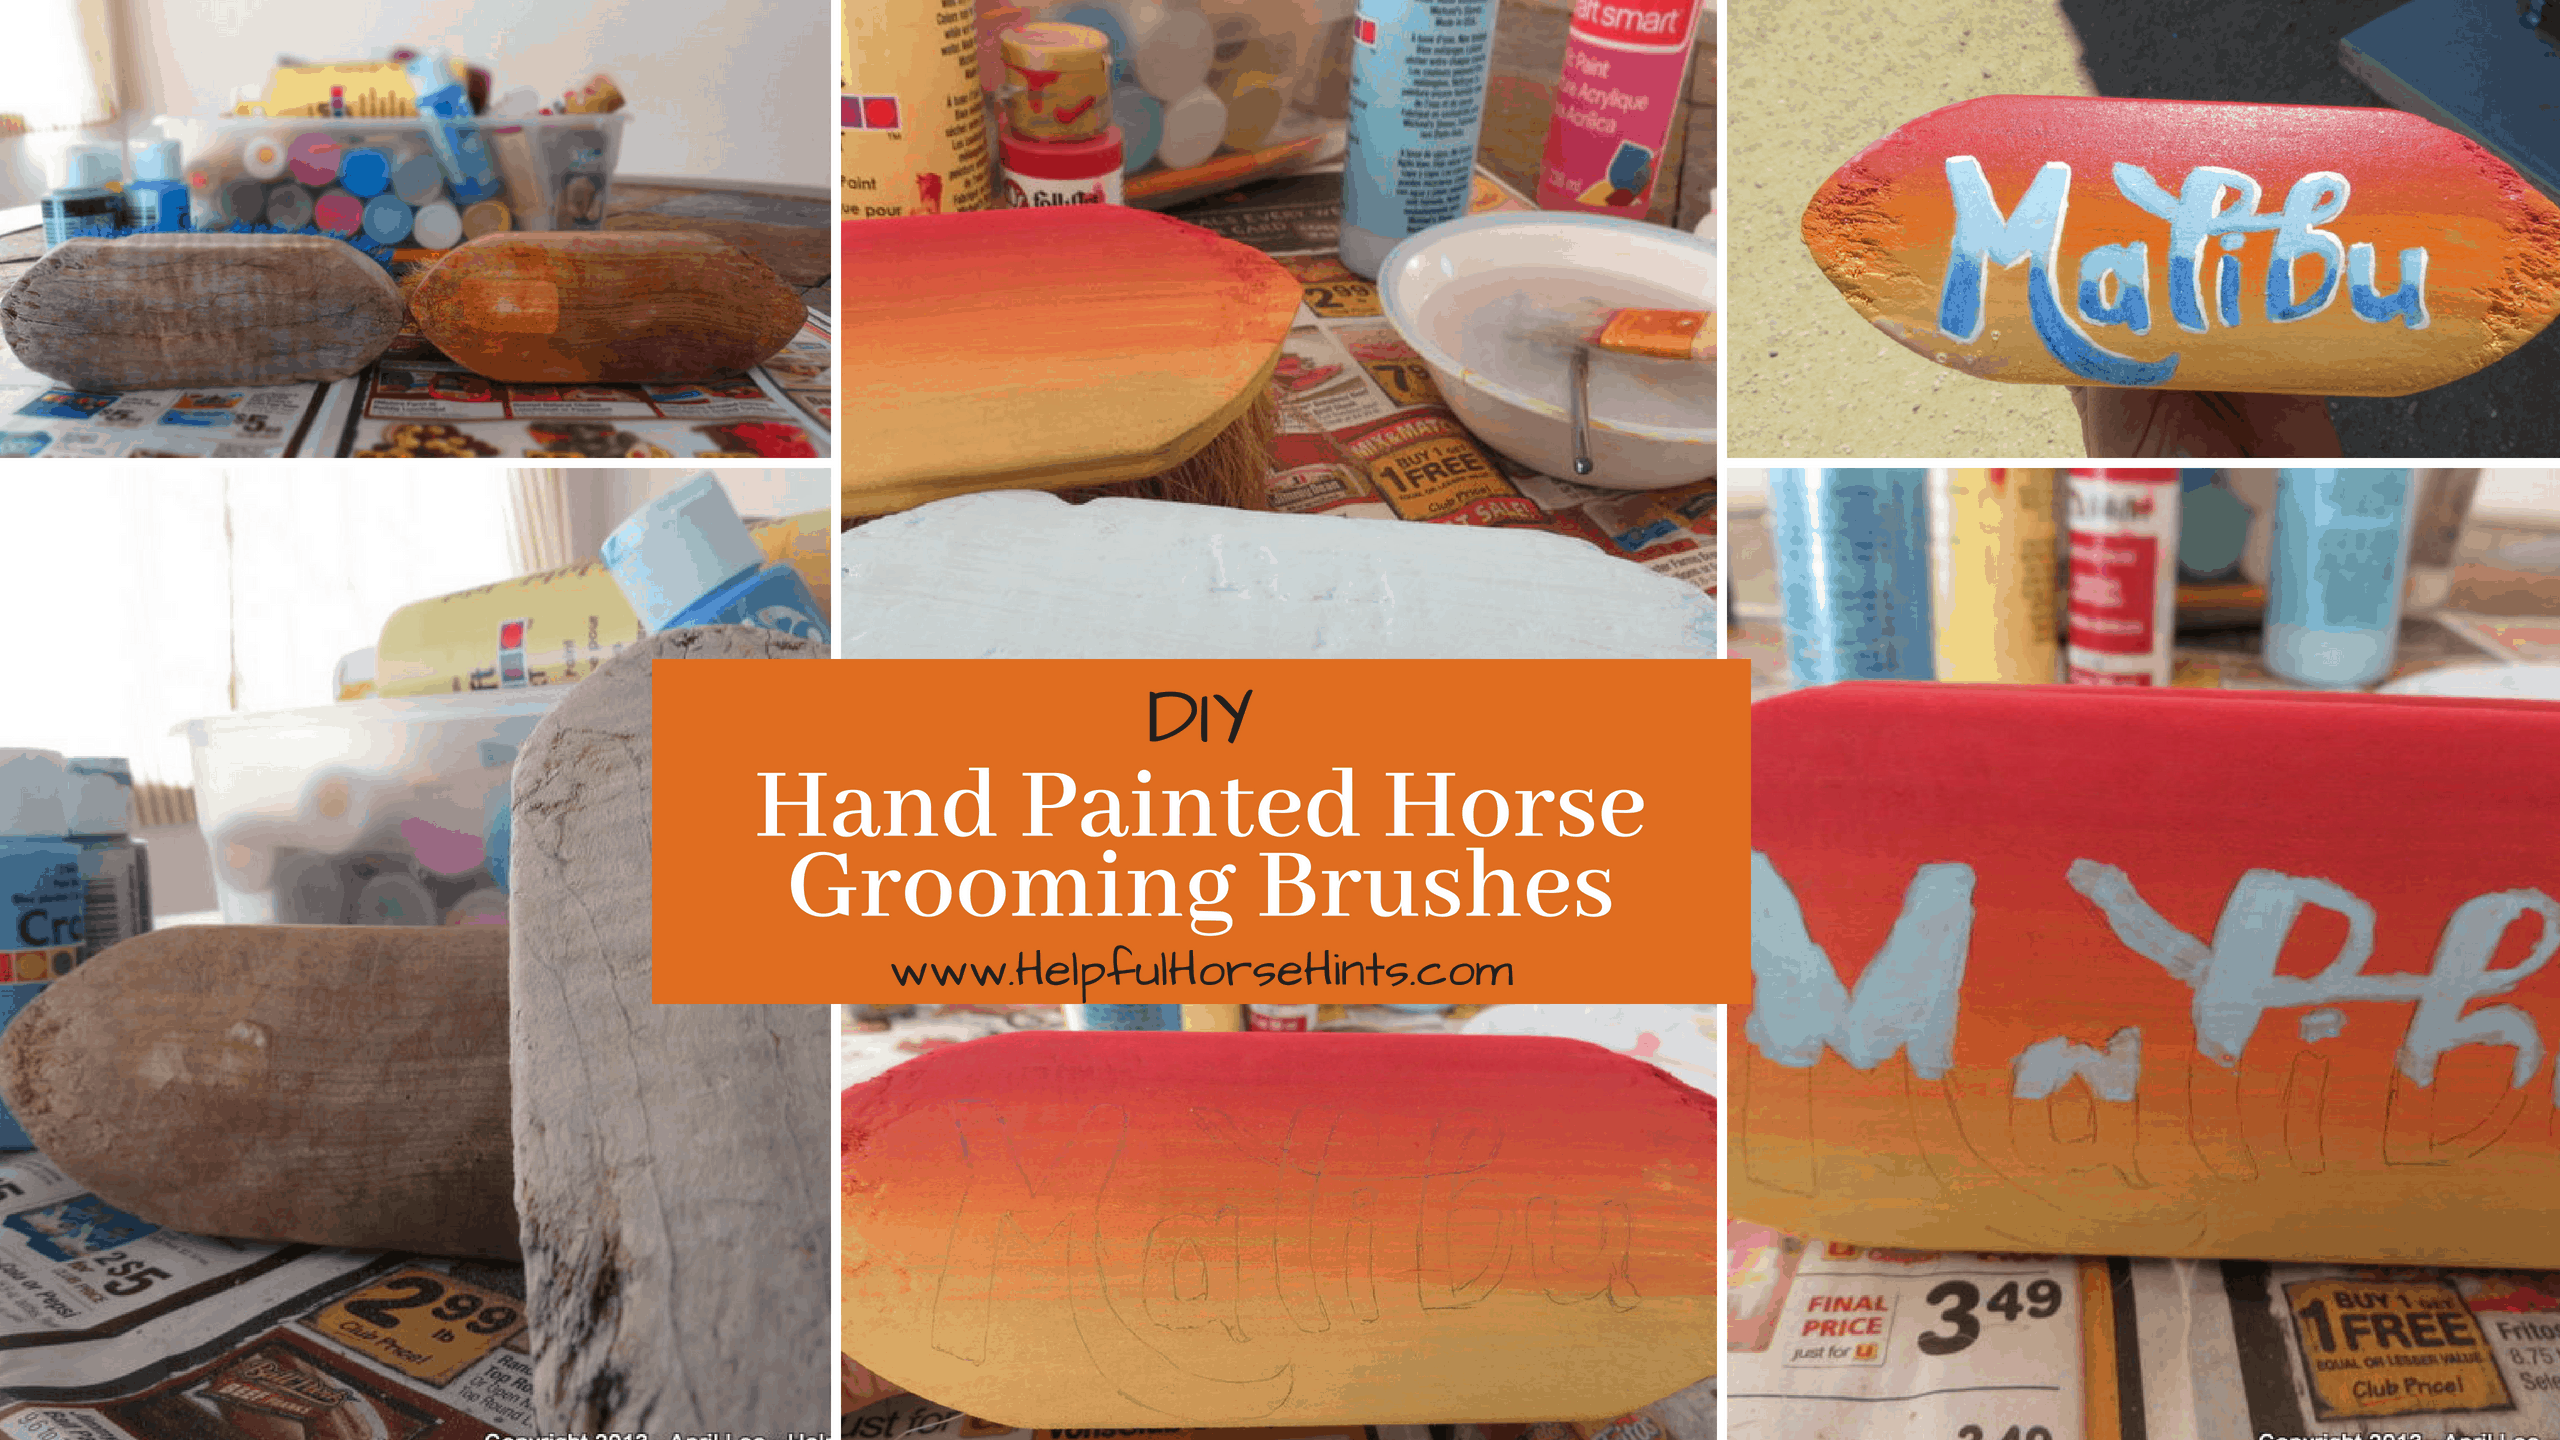 DIY Hand Painted Horse Grooming Brushes